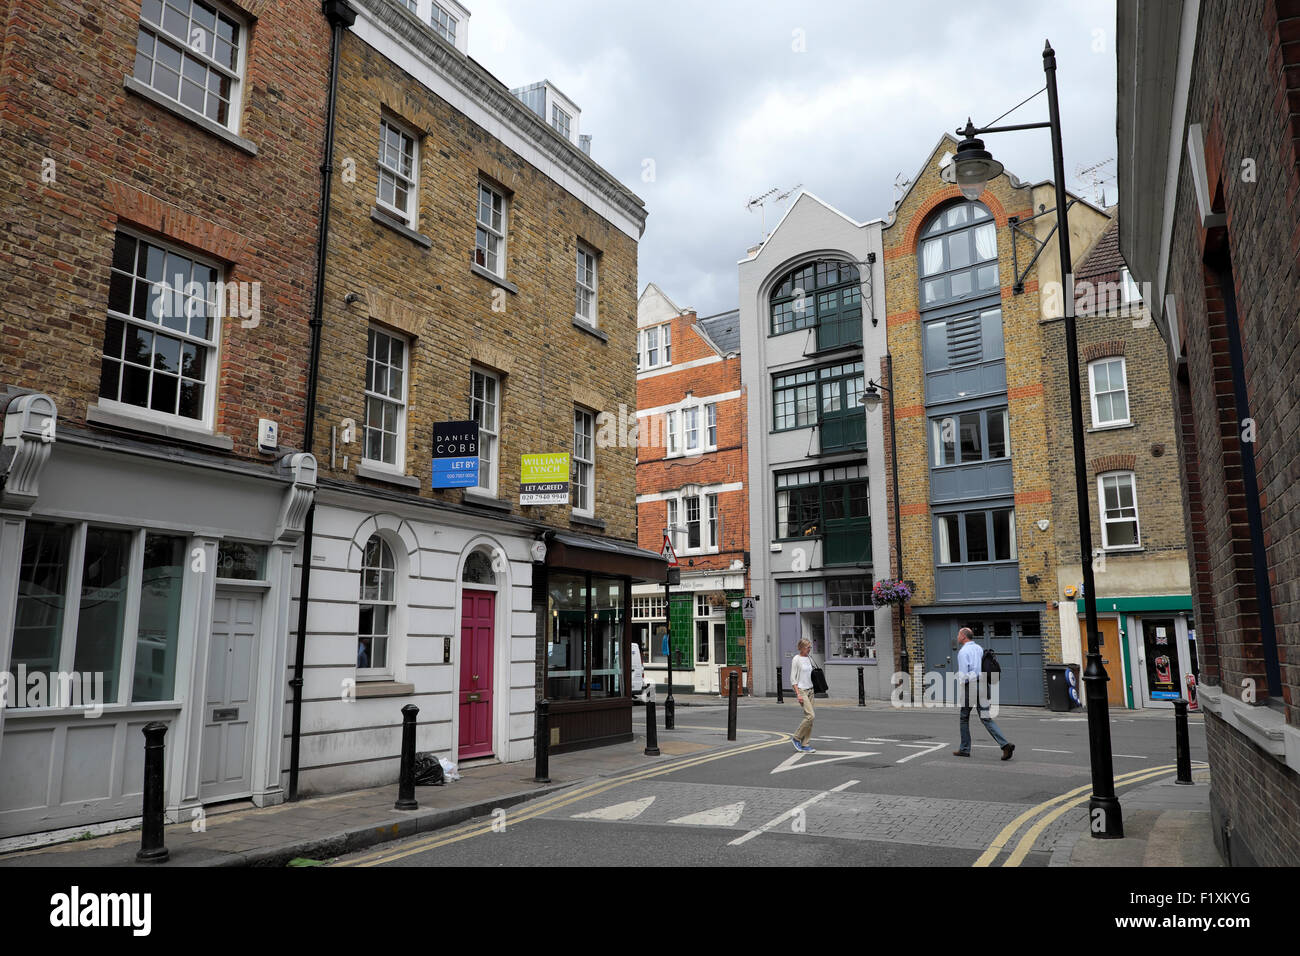 Property to let sign on buildings  corner Morocco Street  and Bermondsey Street in Bermondsey, Southwark London - Stock Image